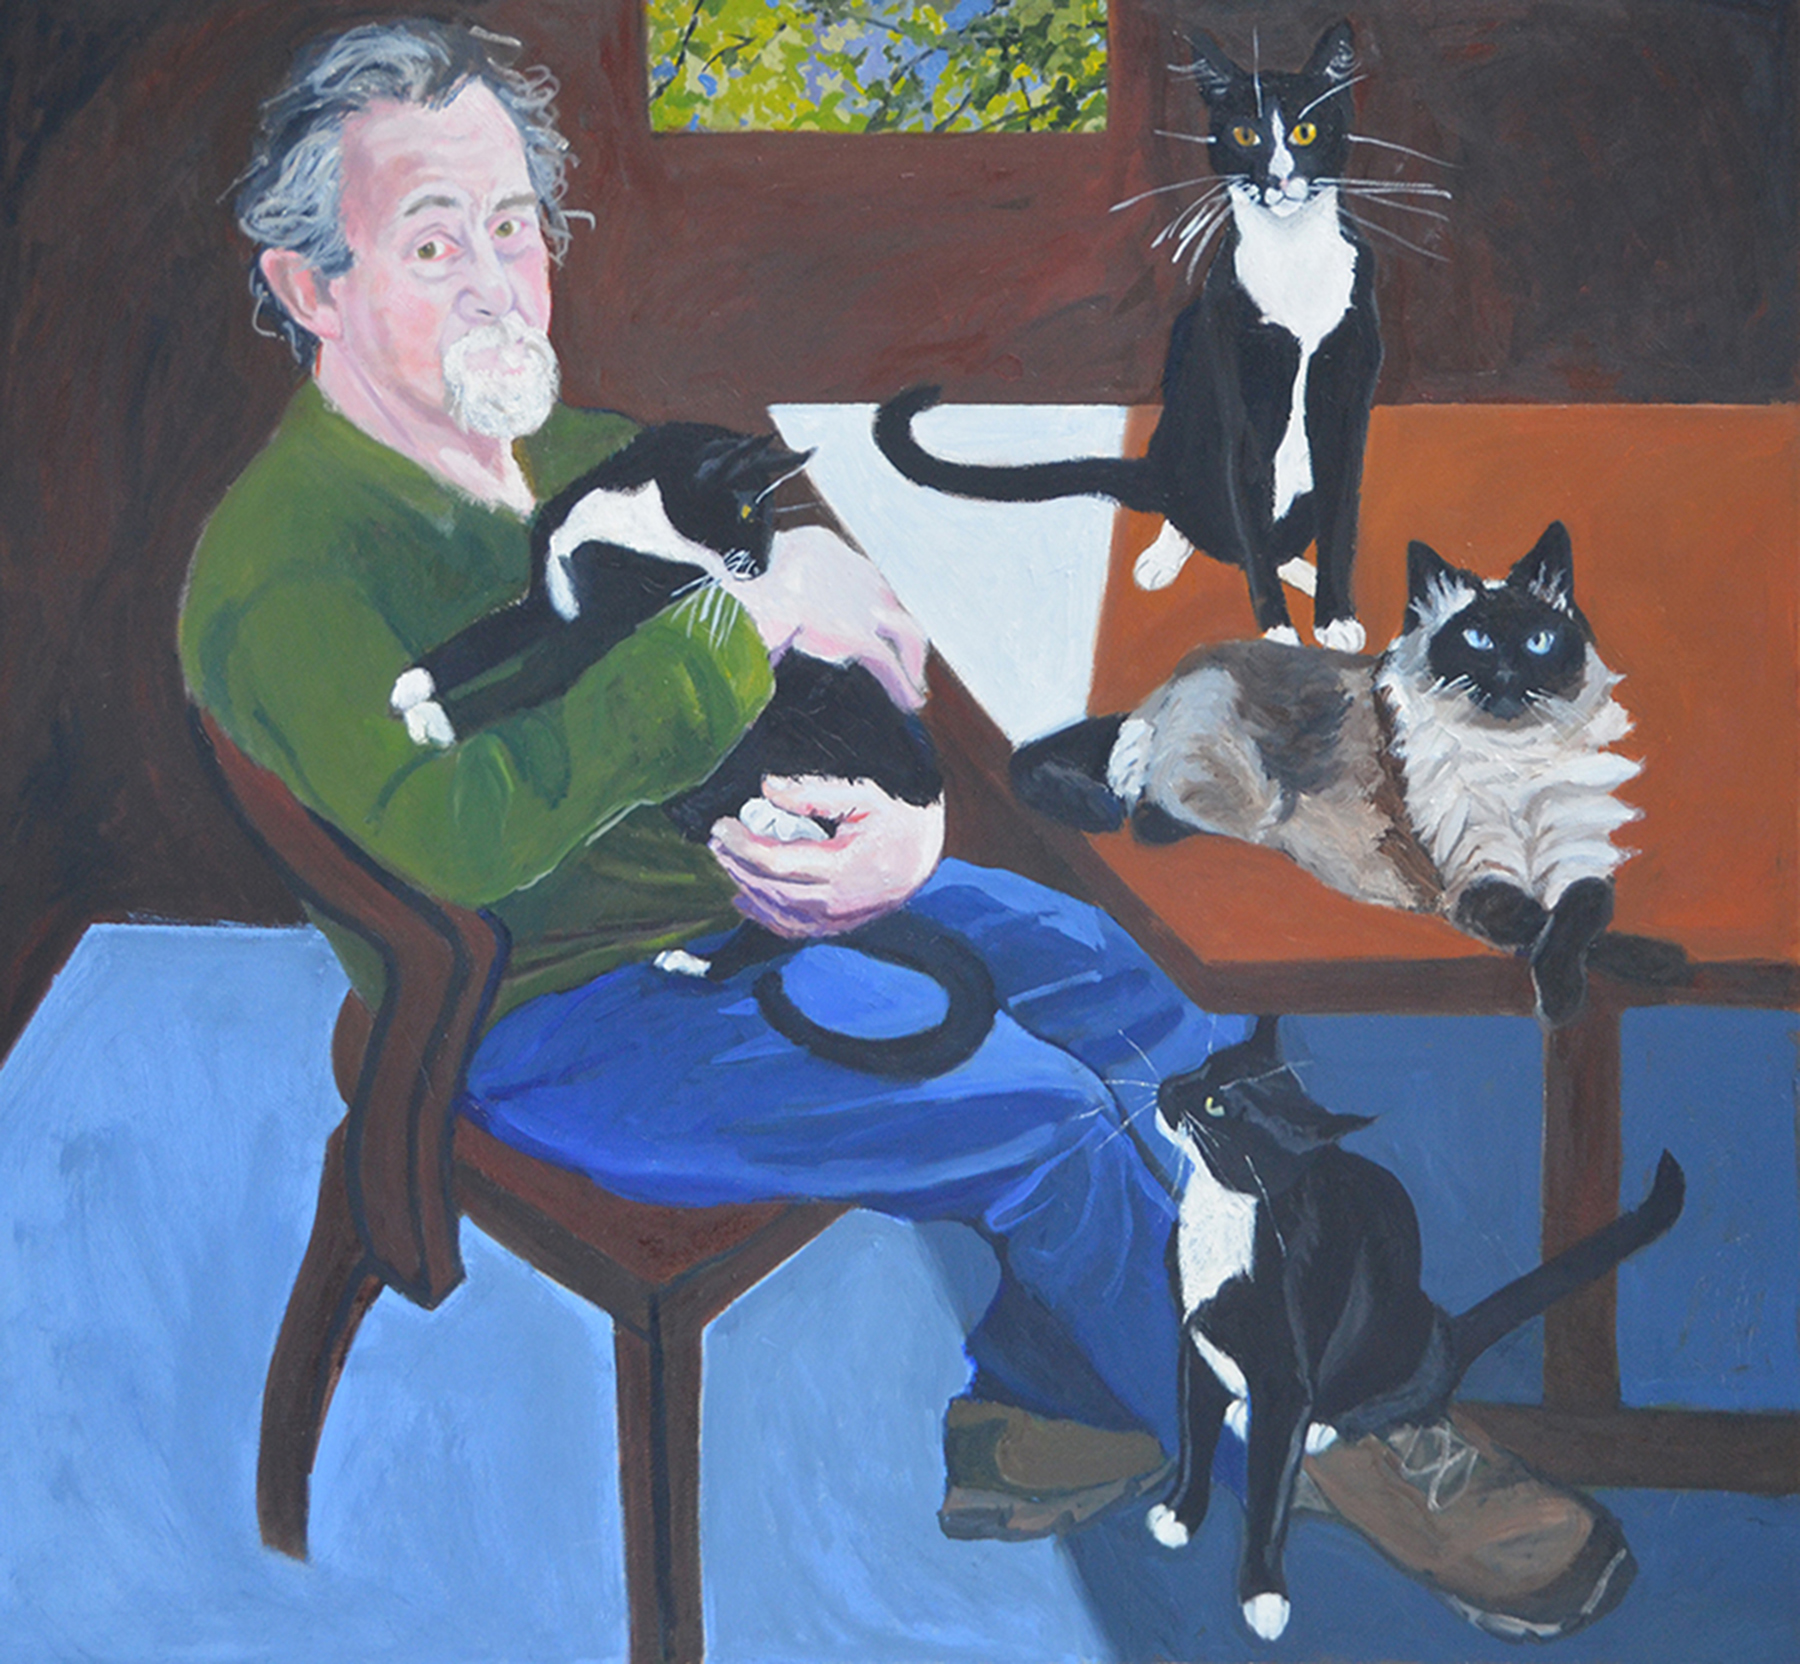 9.Merit Award, Cats With Man by  Constance Merriman.jpg